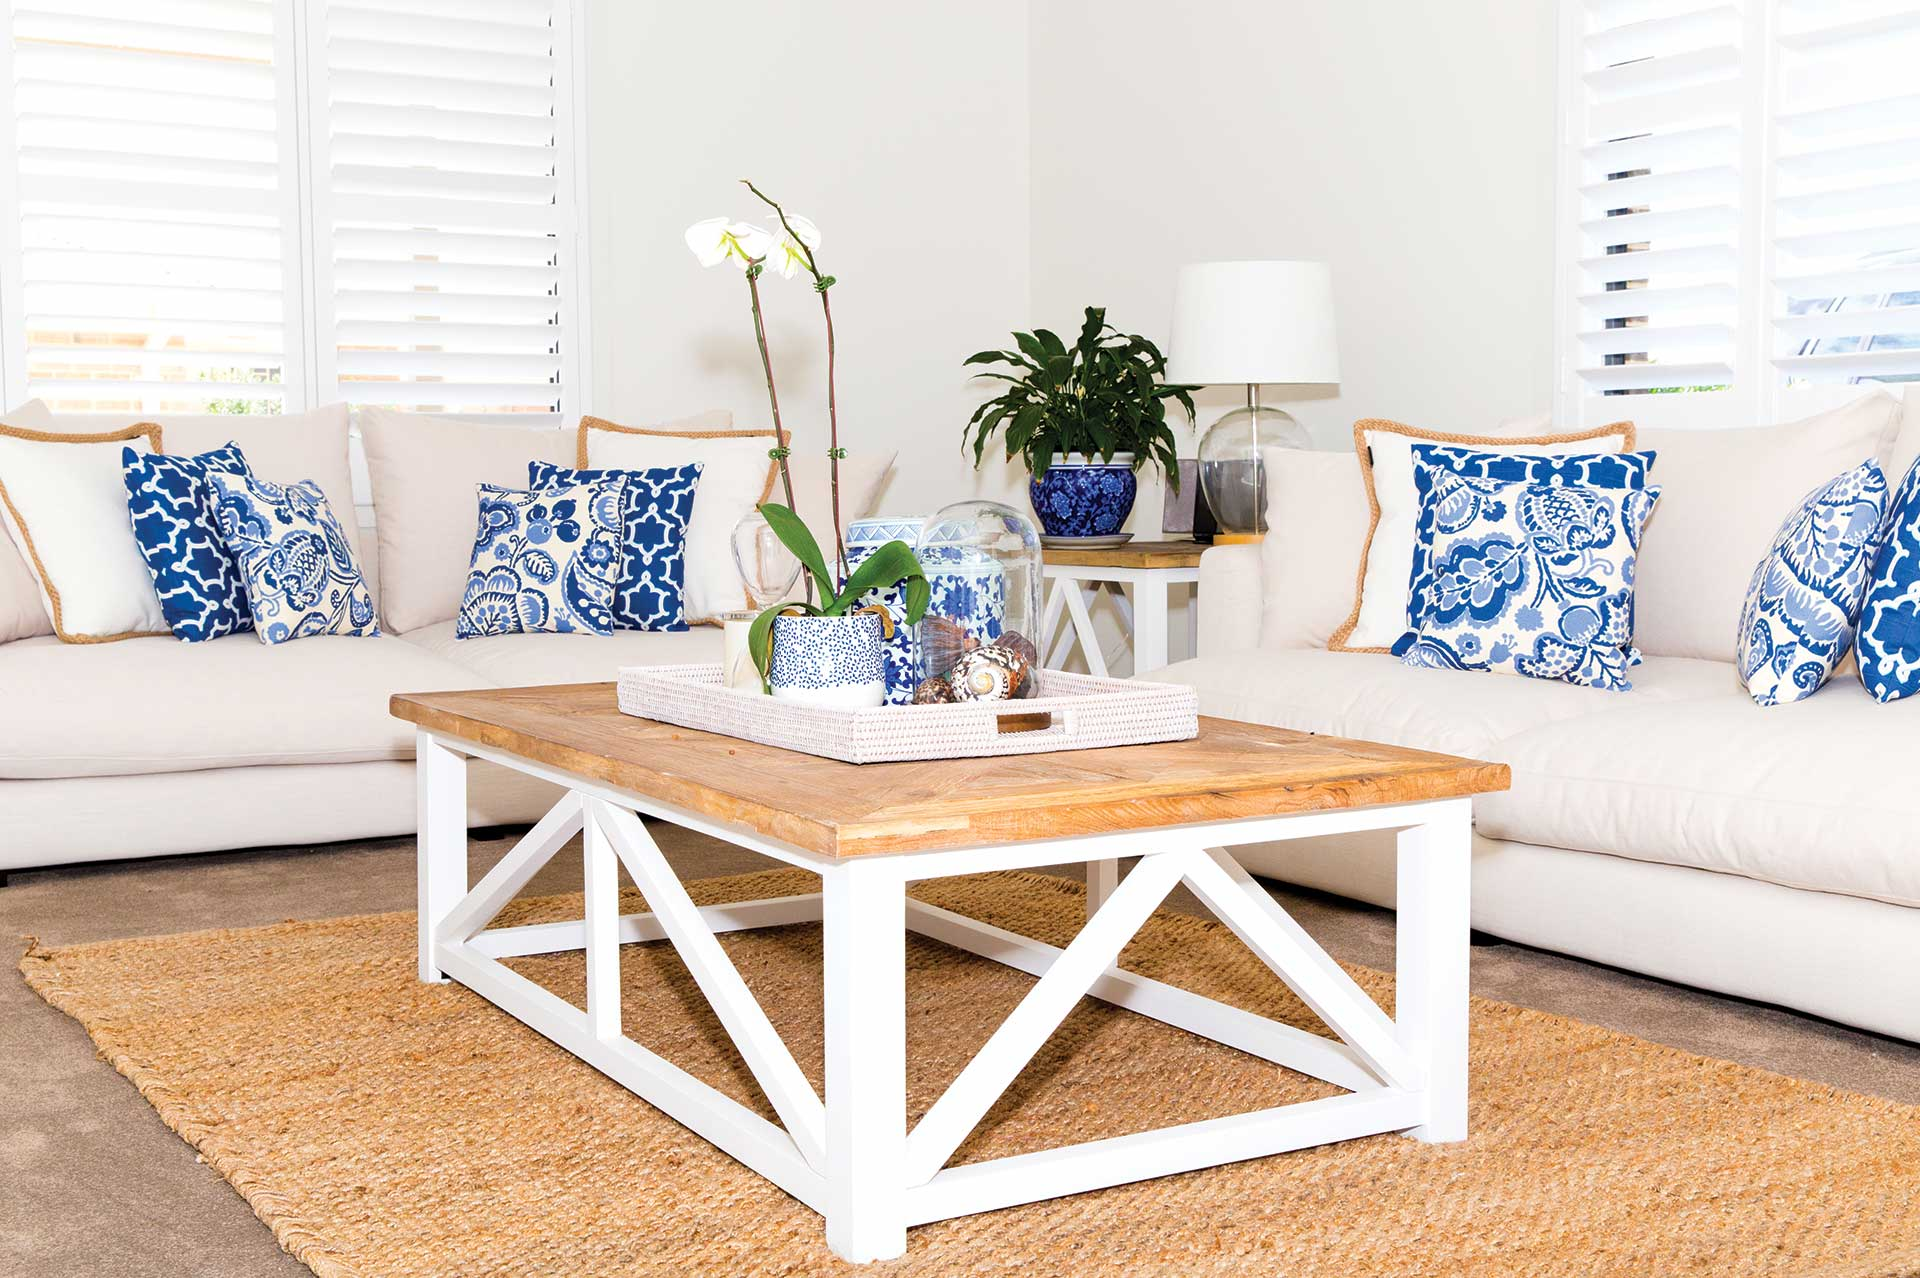 Creating a calm interior design - Hamptons style – Premium ...